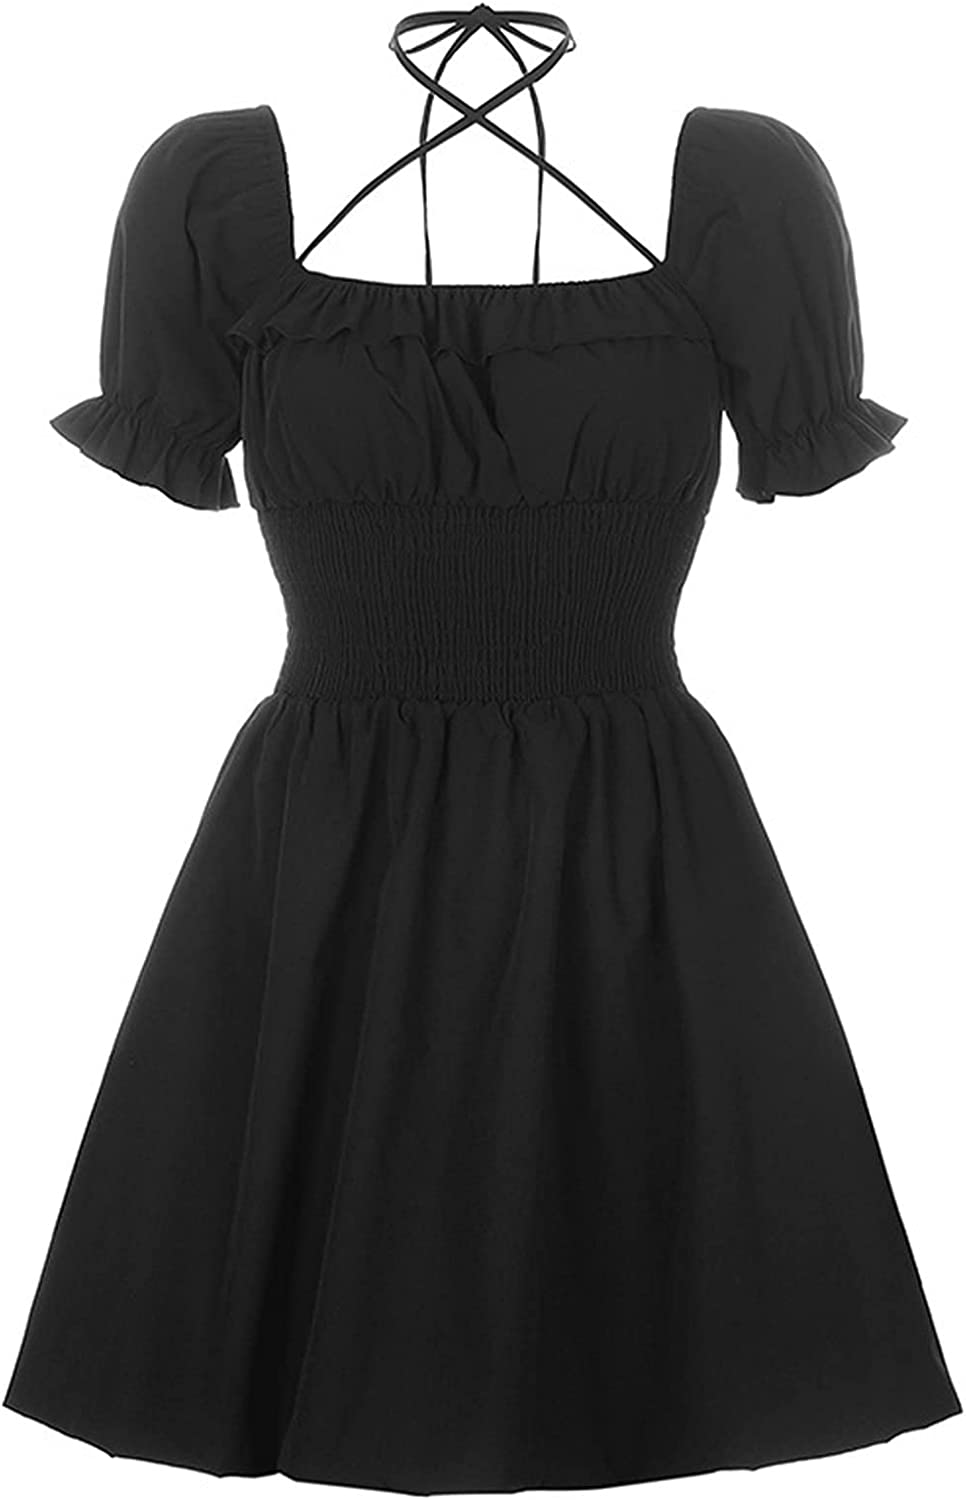 Yuncheng Womens Goth Lolita Dress Black Mini Dress Puff Sleeve A-line Cocktail Party Dress (Color : Black, Size : Small)